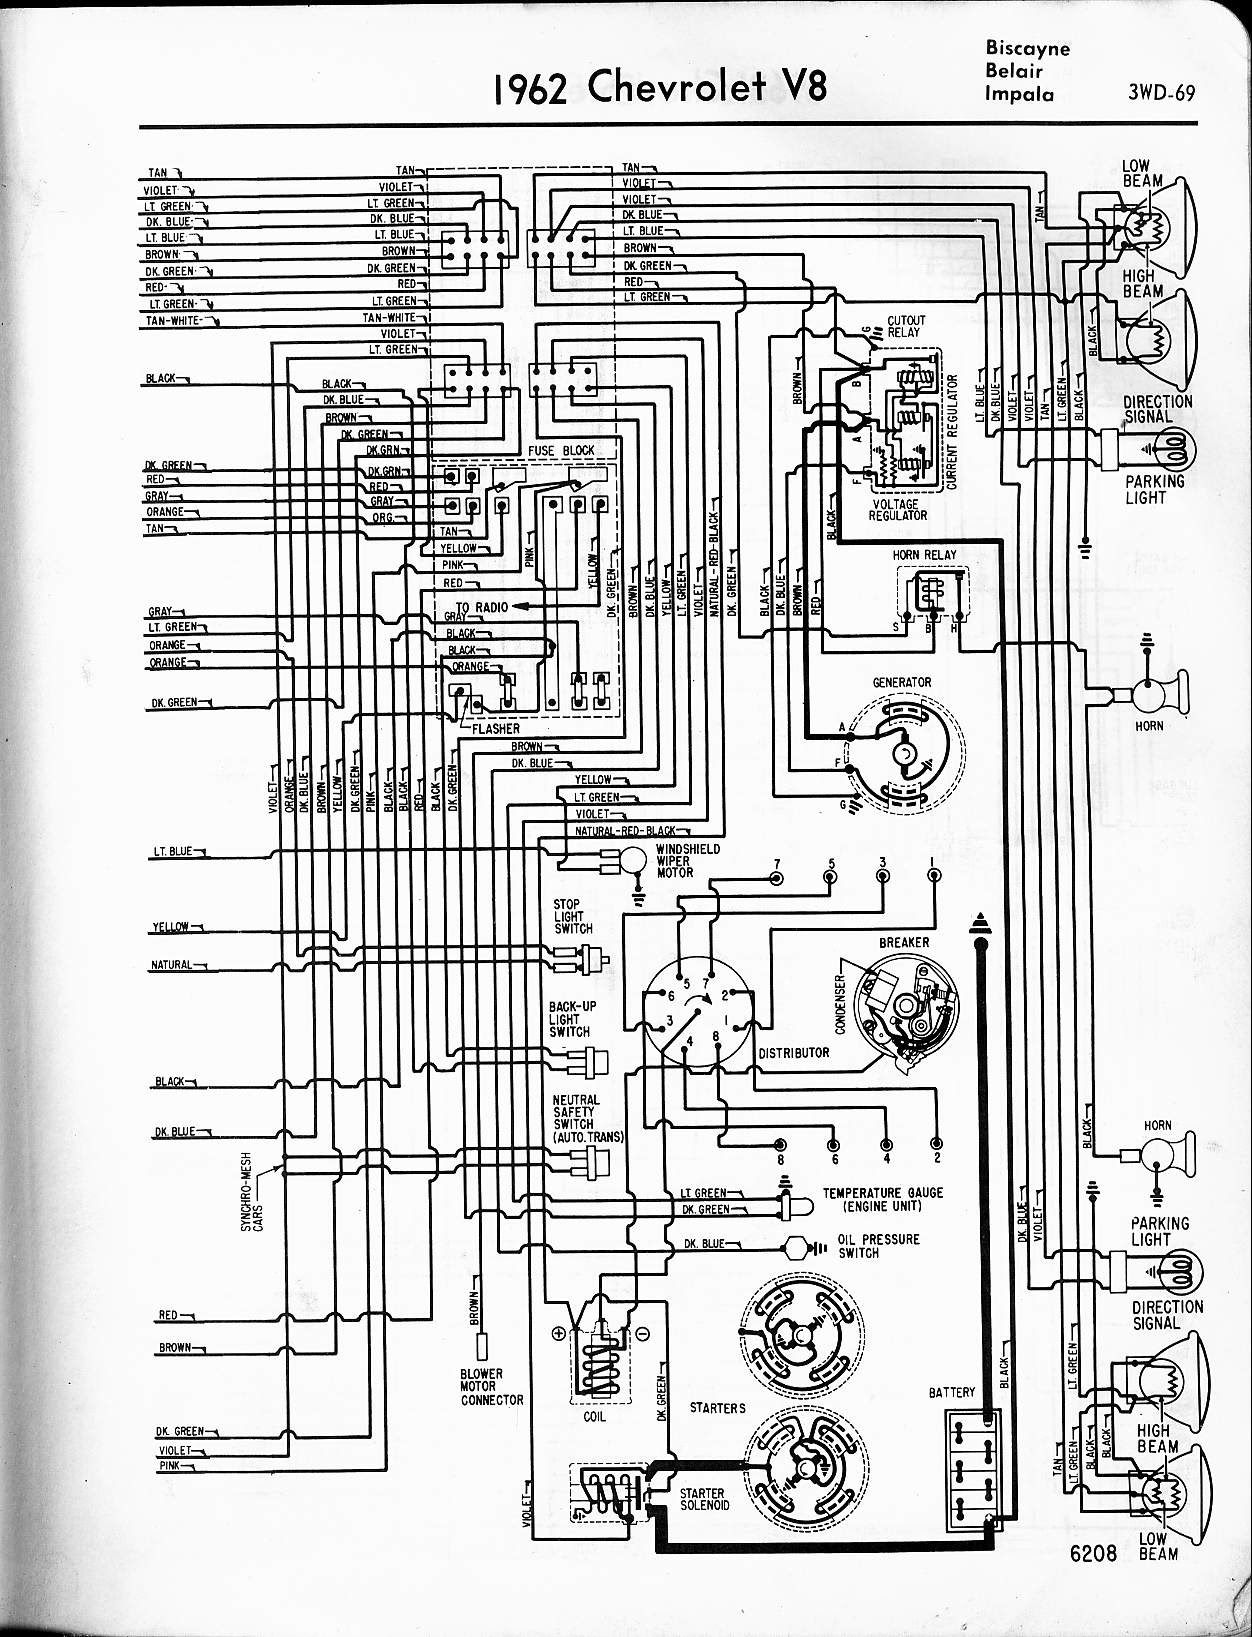 1962 Chevy Pickup Wiring Diagram Wiring Diagram Provider Provider Frankmotors Es